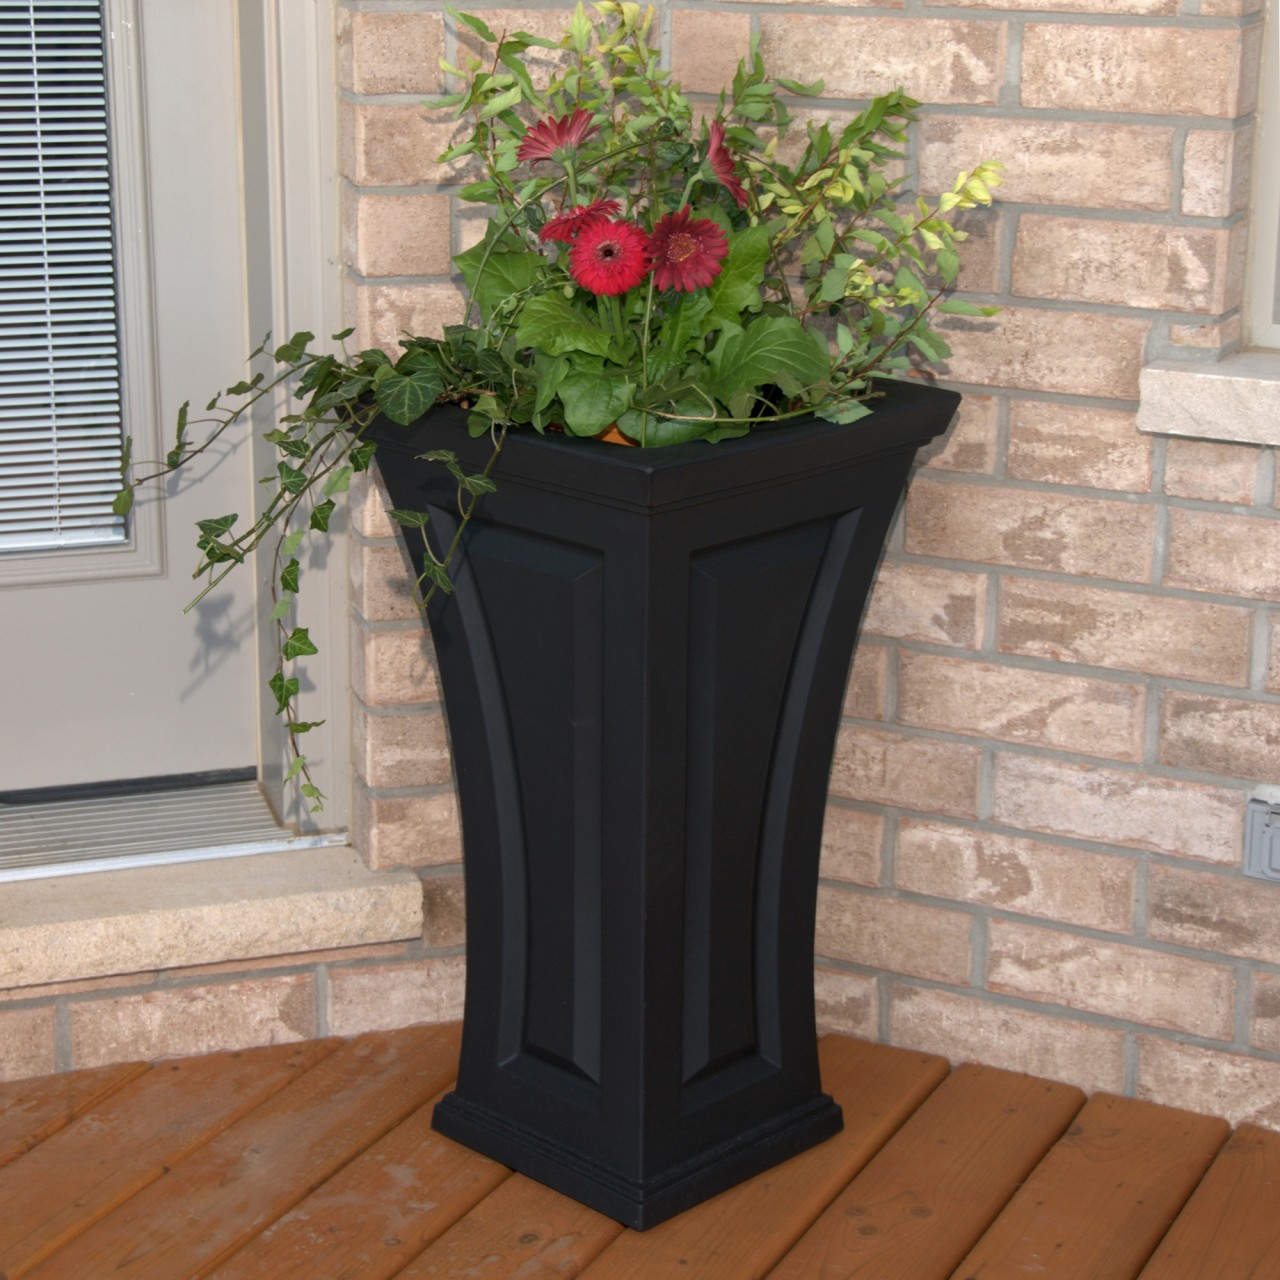 Buy Planters Tall Outdoor Planter Ideas Cambridge Interior Design Ideas